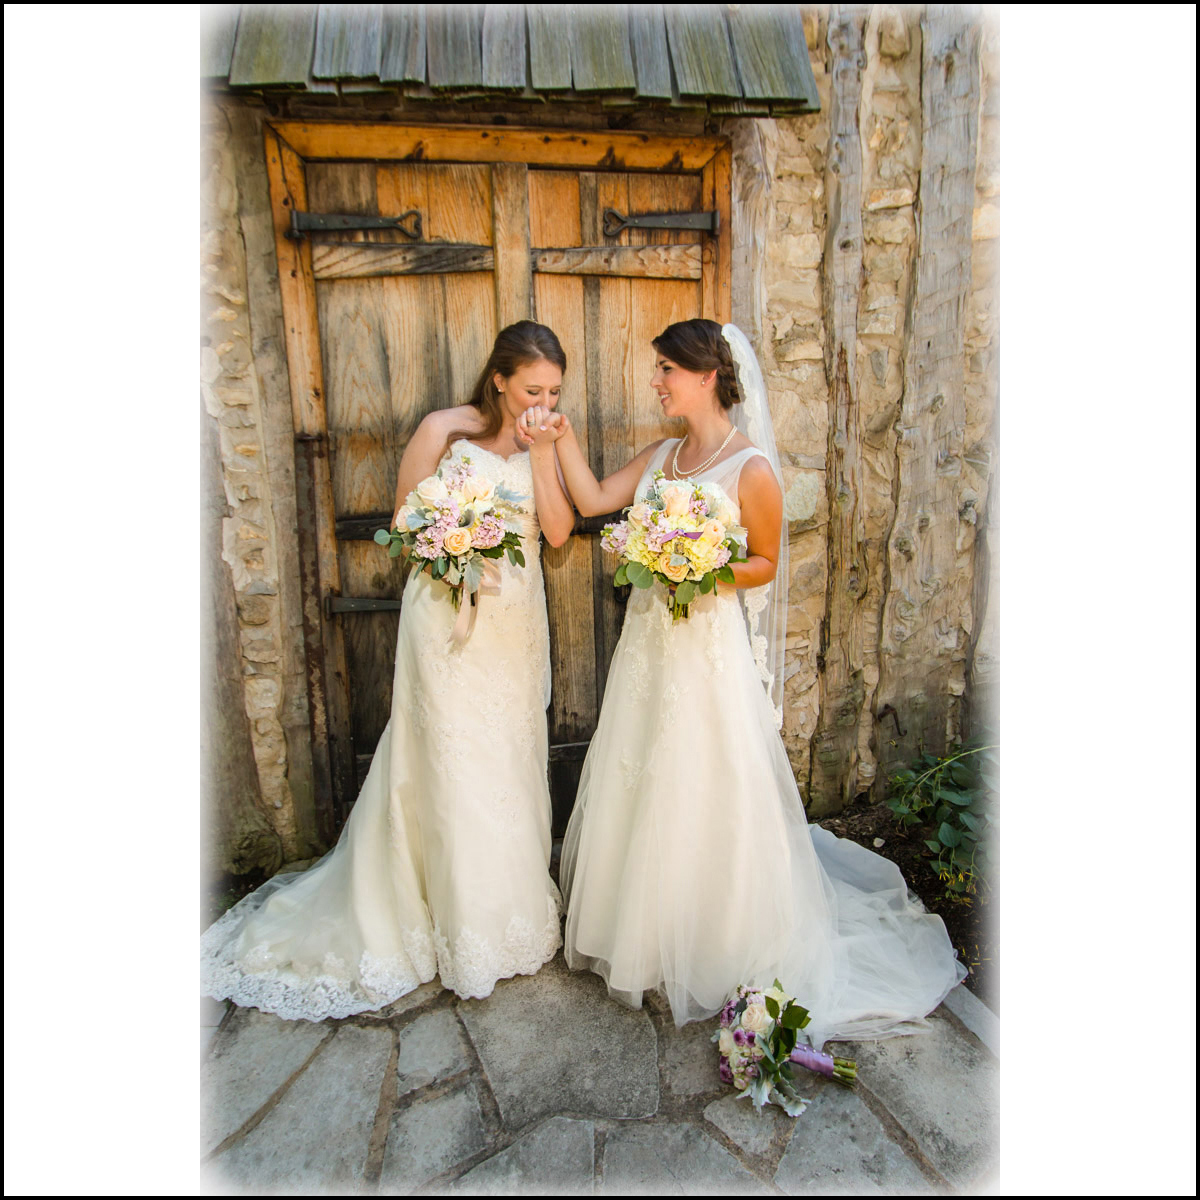 Link to Greater St Louis area wedding photographers gallery: Nicole and Shaina